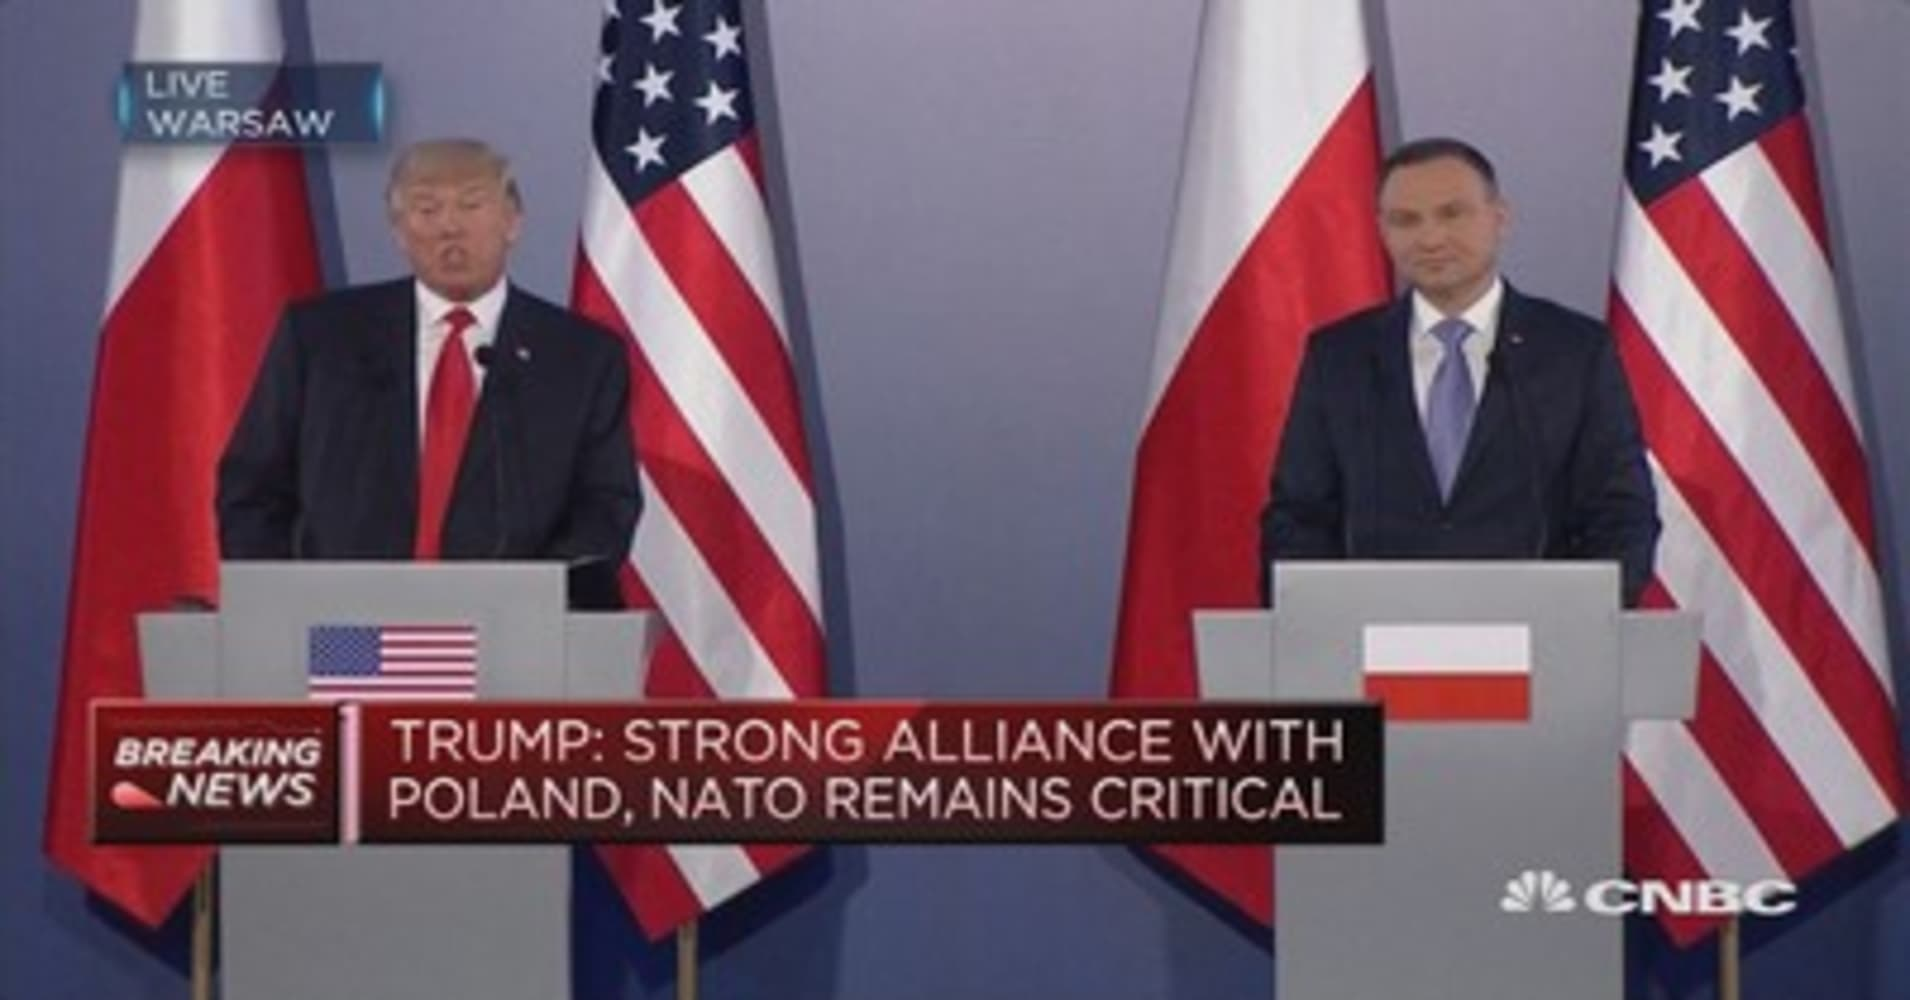 donald trump u0027s speech in warsaw poland ahead of g 20 summit